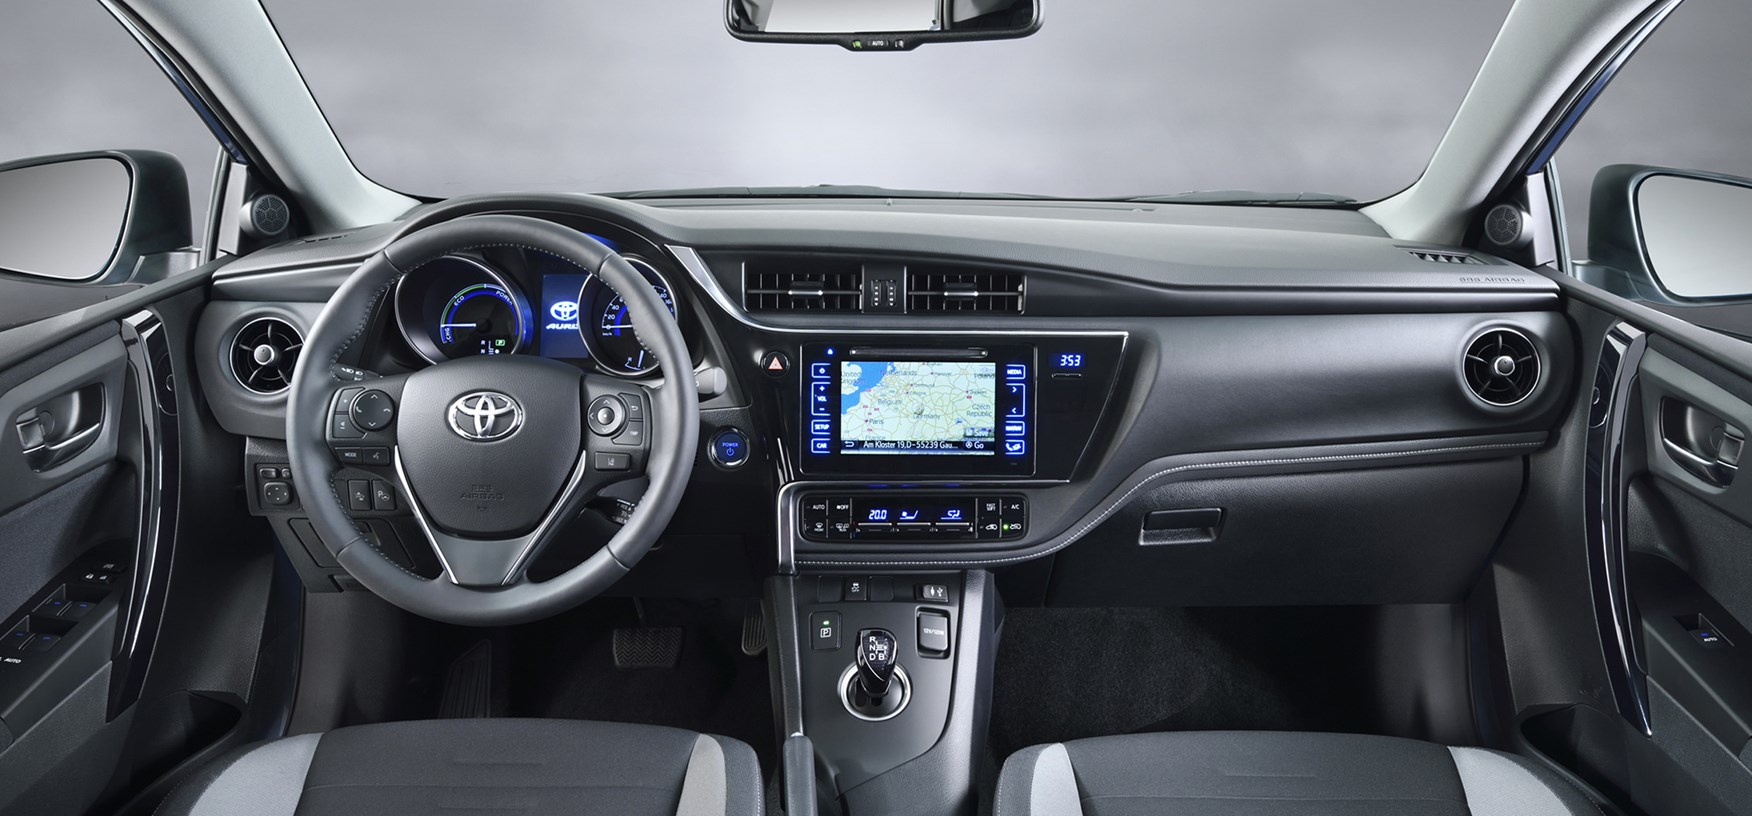 the newly facelifted toyota auris 2015 facelift applies to toyota ...